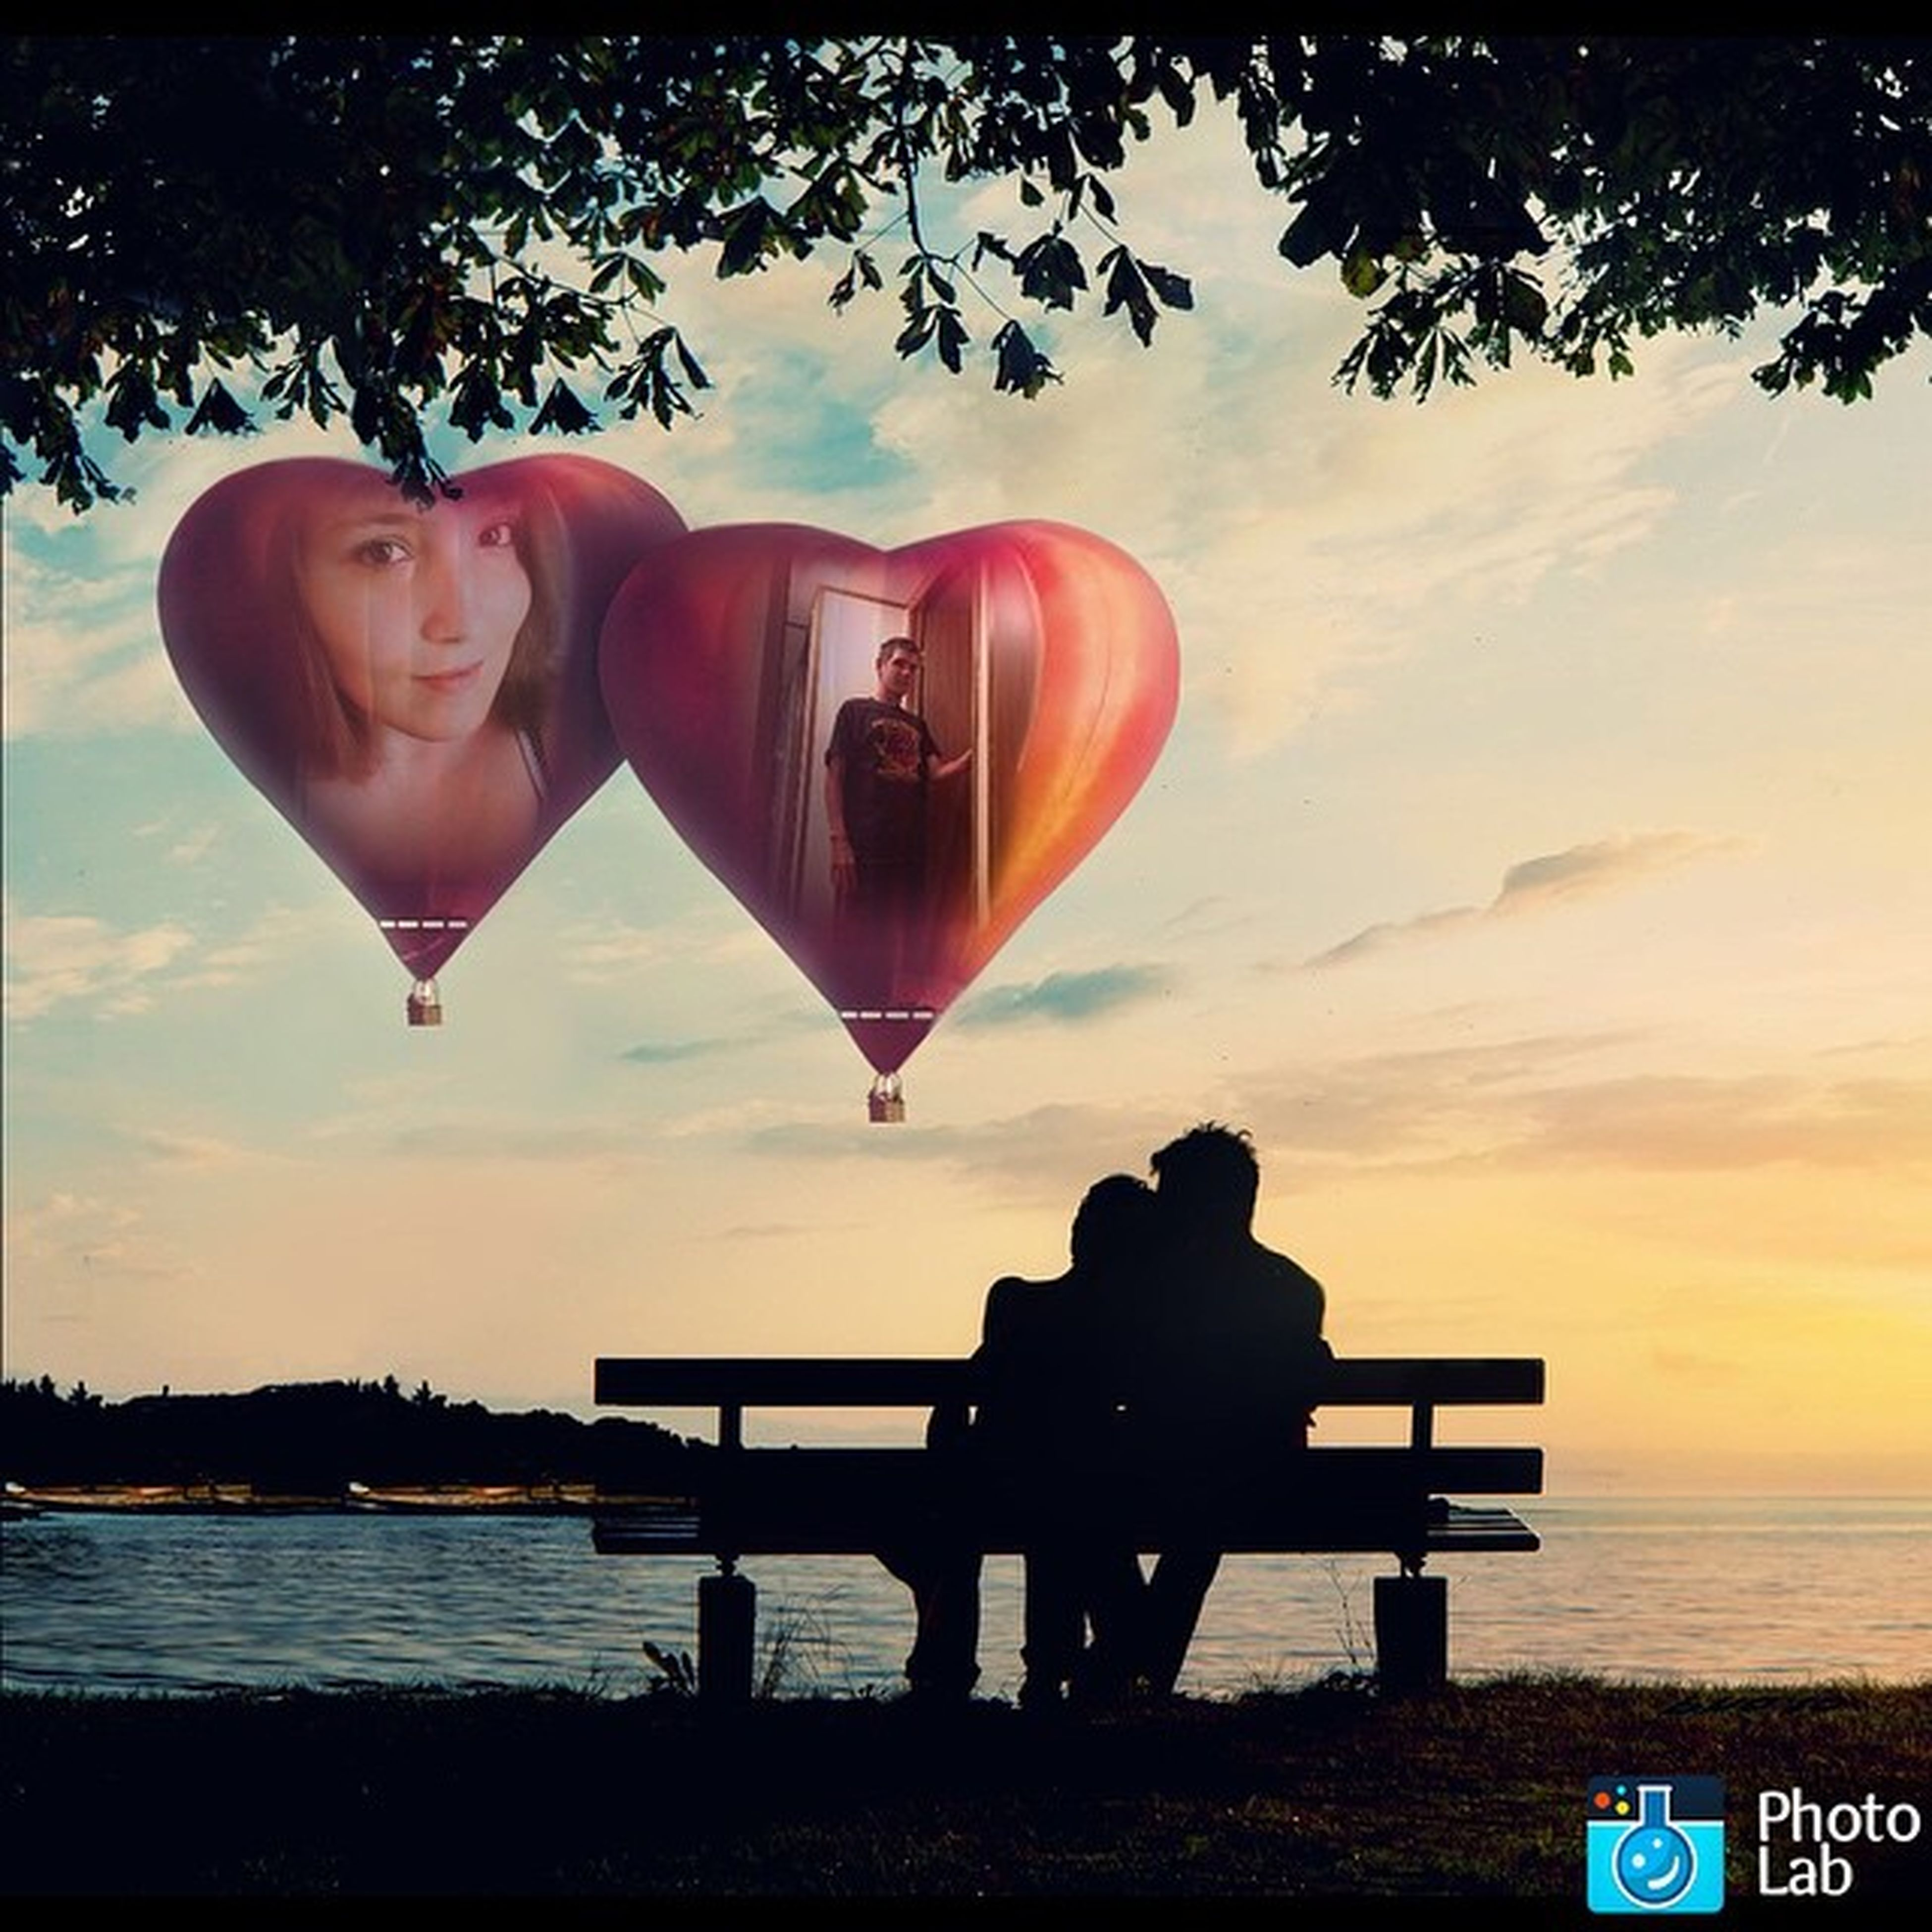 My photo effect from Photo Lab app Photolab Heavenlylove Collage Collageart Photocollage Love Valentine Inlove Romantic Youandme